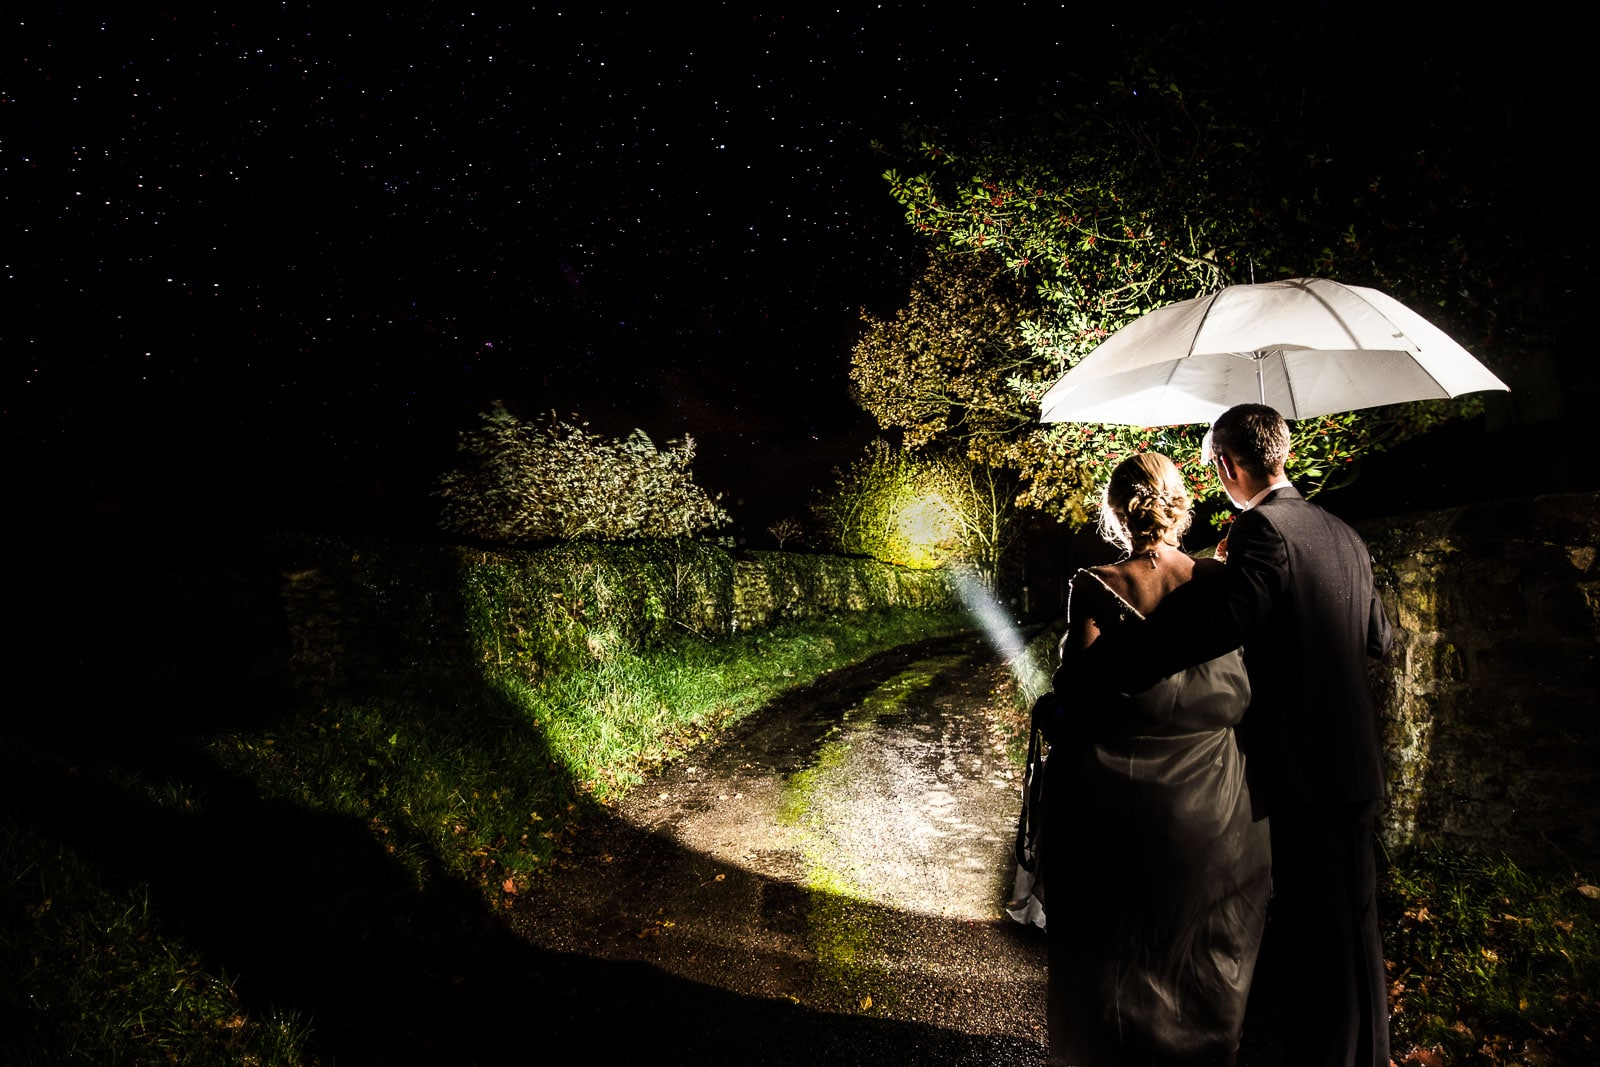 Wedding photography using a flash light and off camera flash